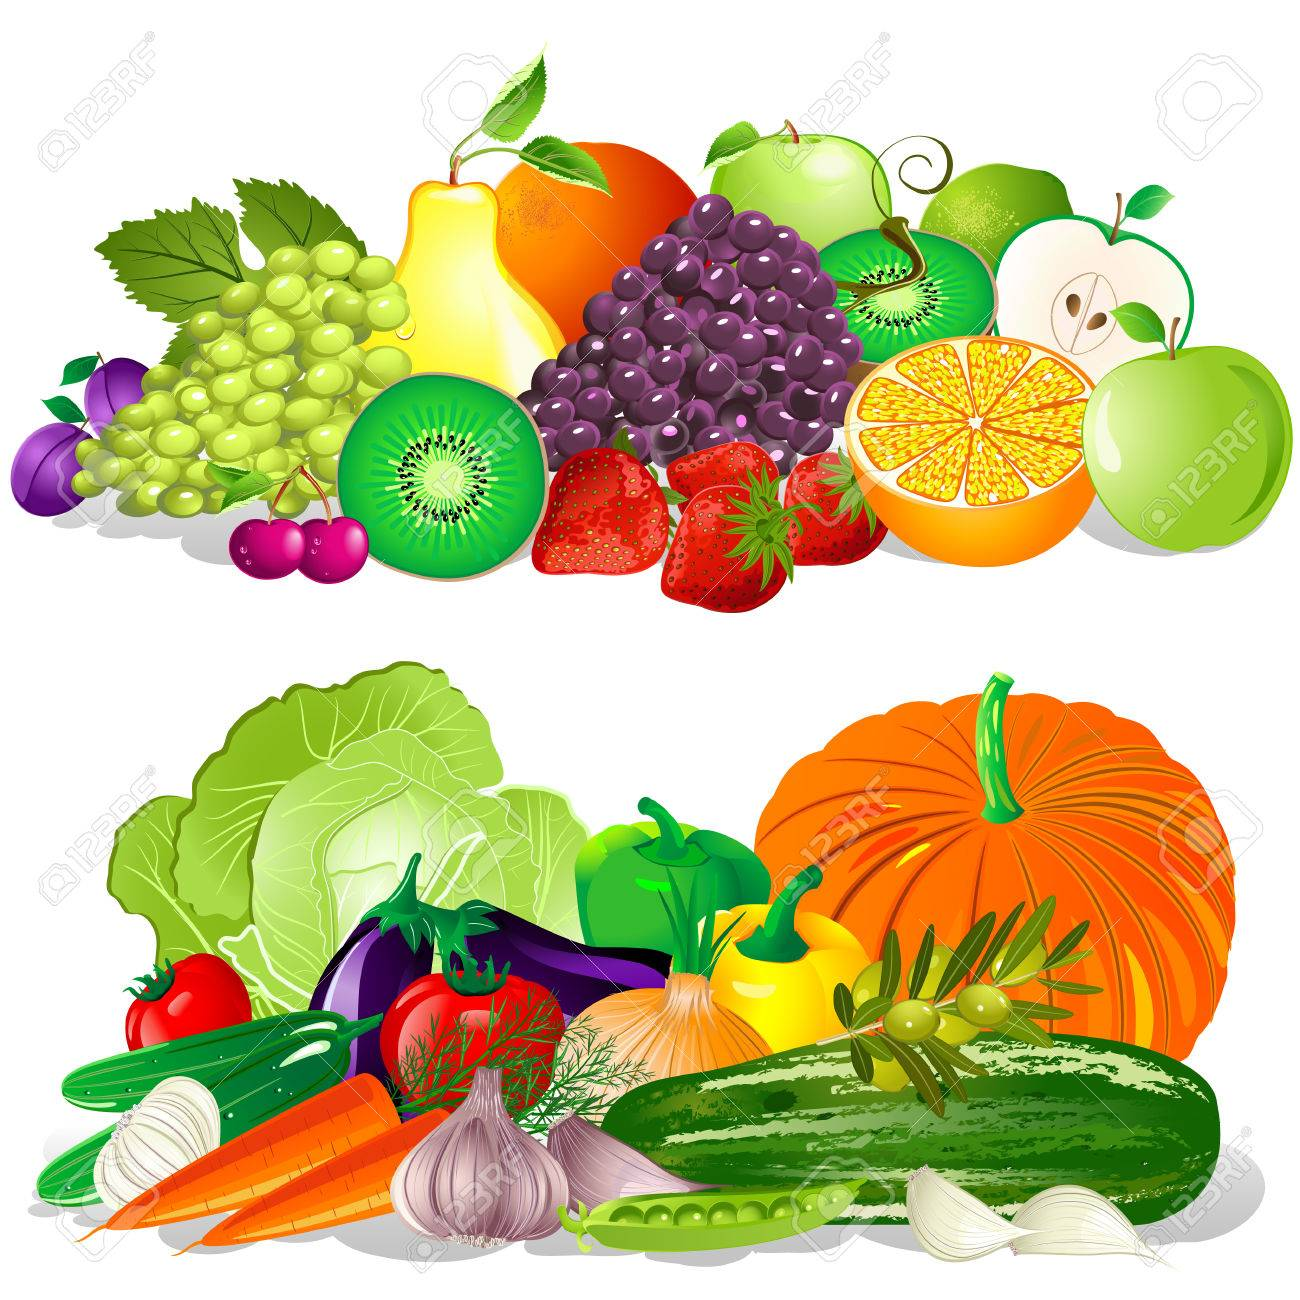 Fruit and Vegetables Stock Vector - 8495259